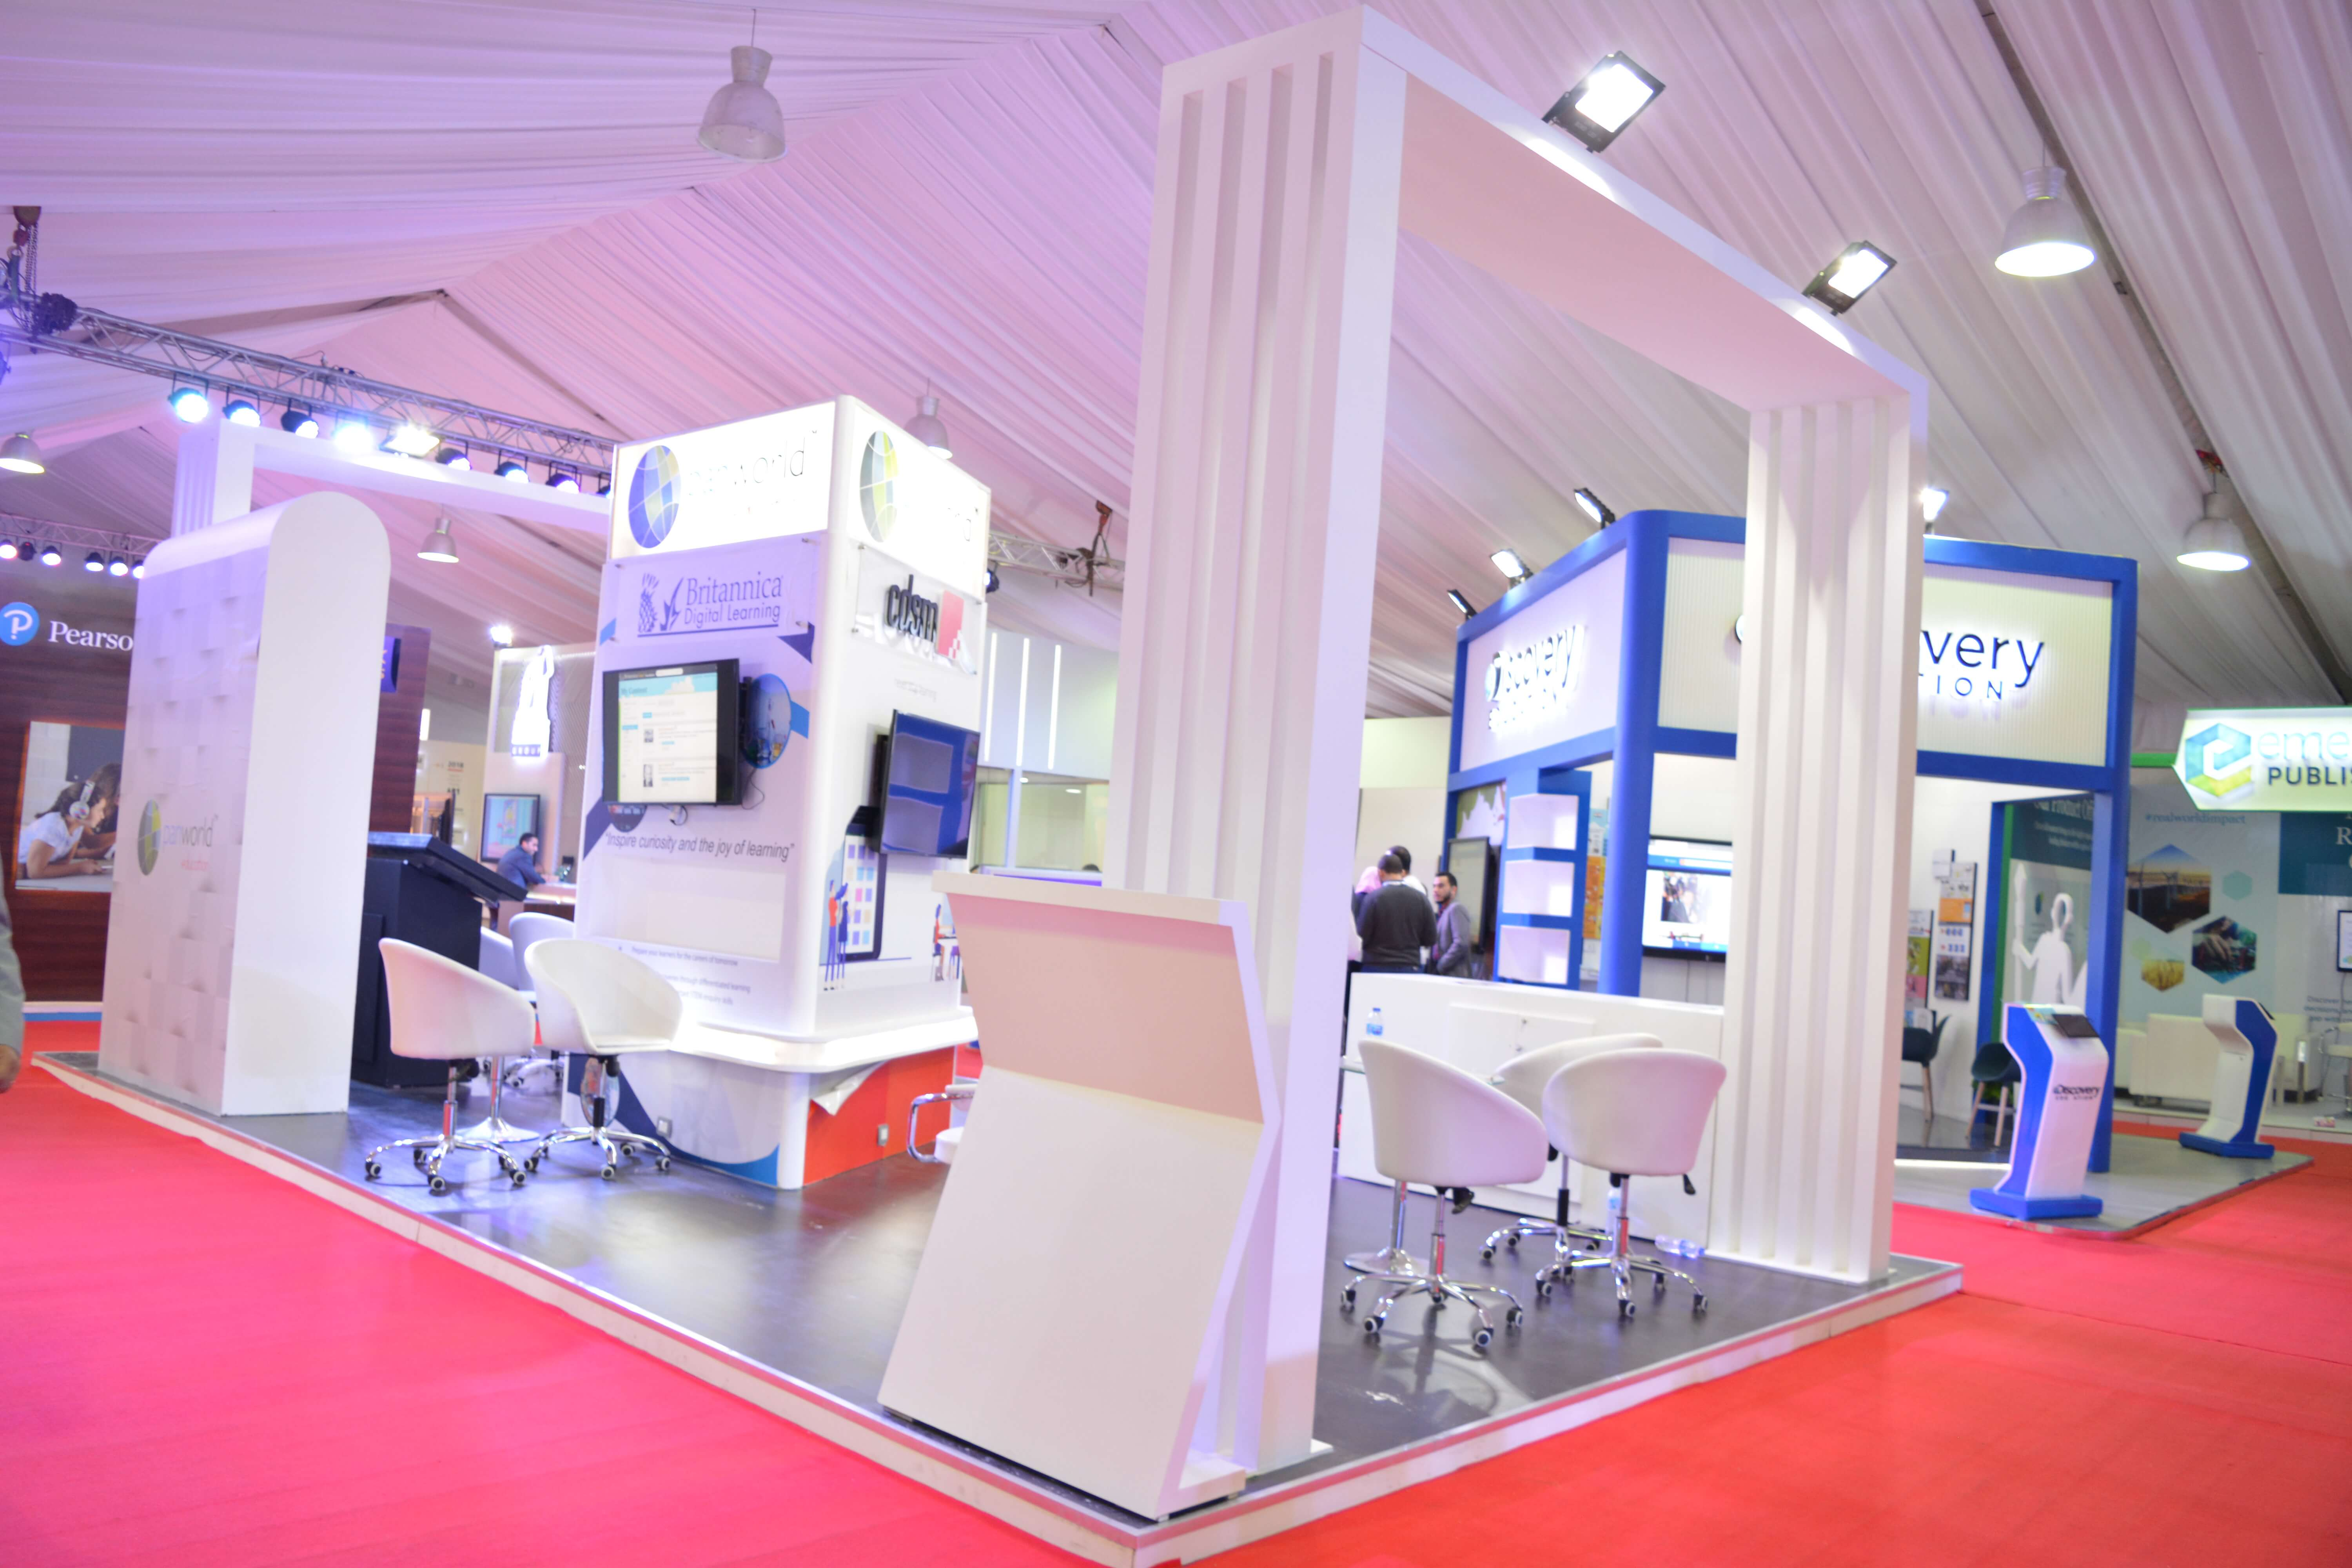 Marketing Exhibition Stand Zones : Exhibition stands archives scope integrated marketing solutions